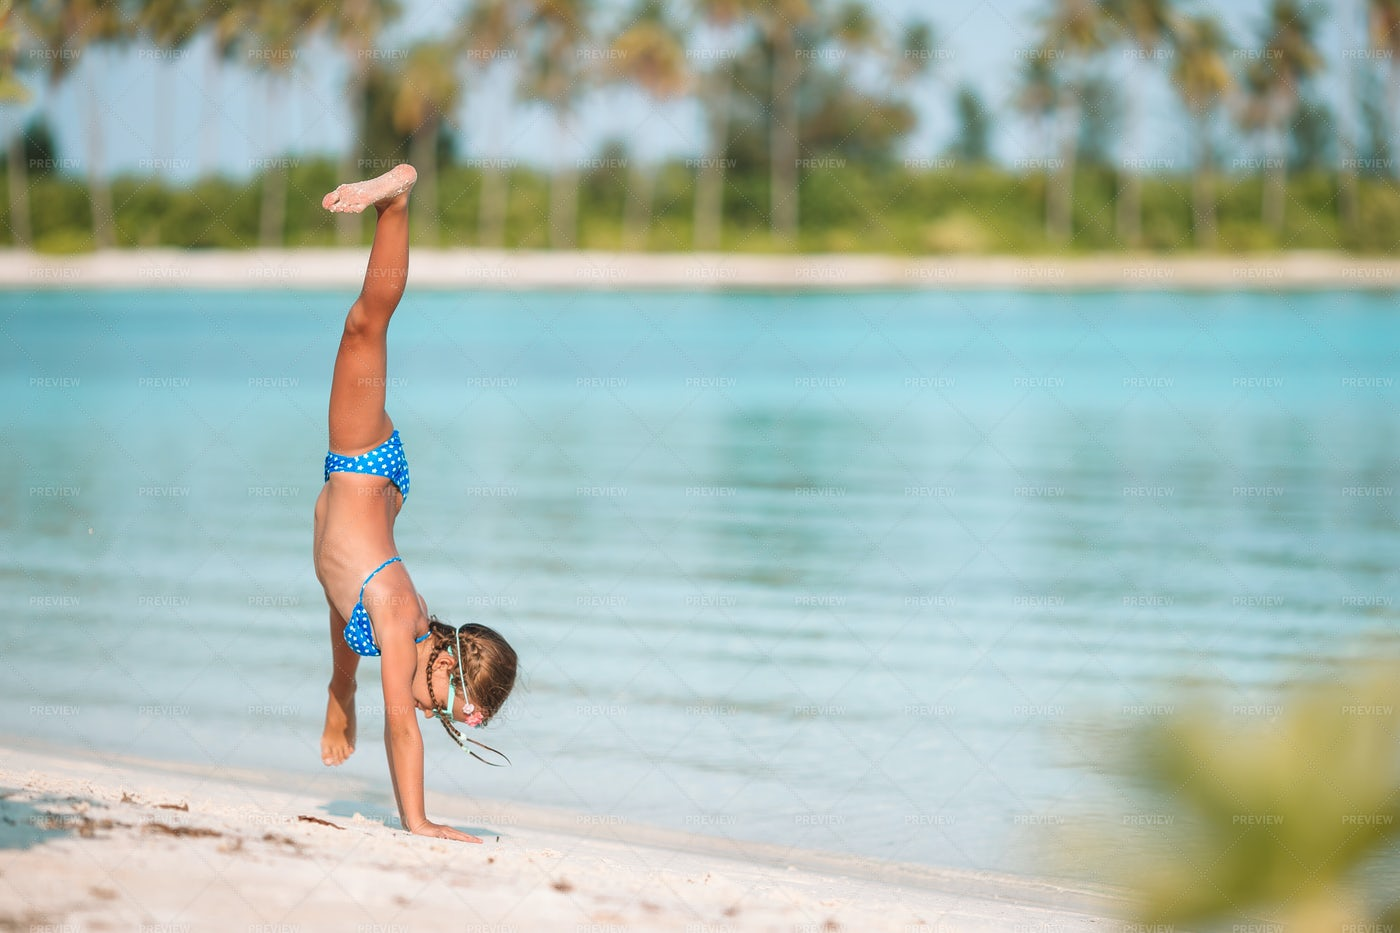 Girl Doing Somersaults On The Beach: Stock Photos